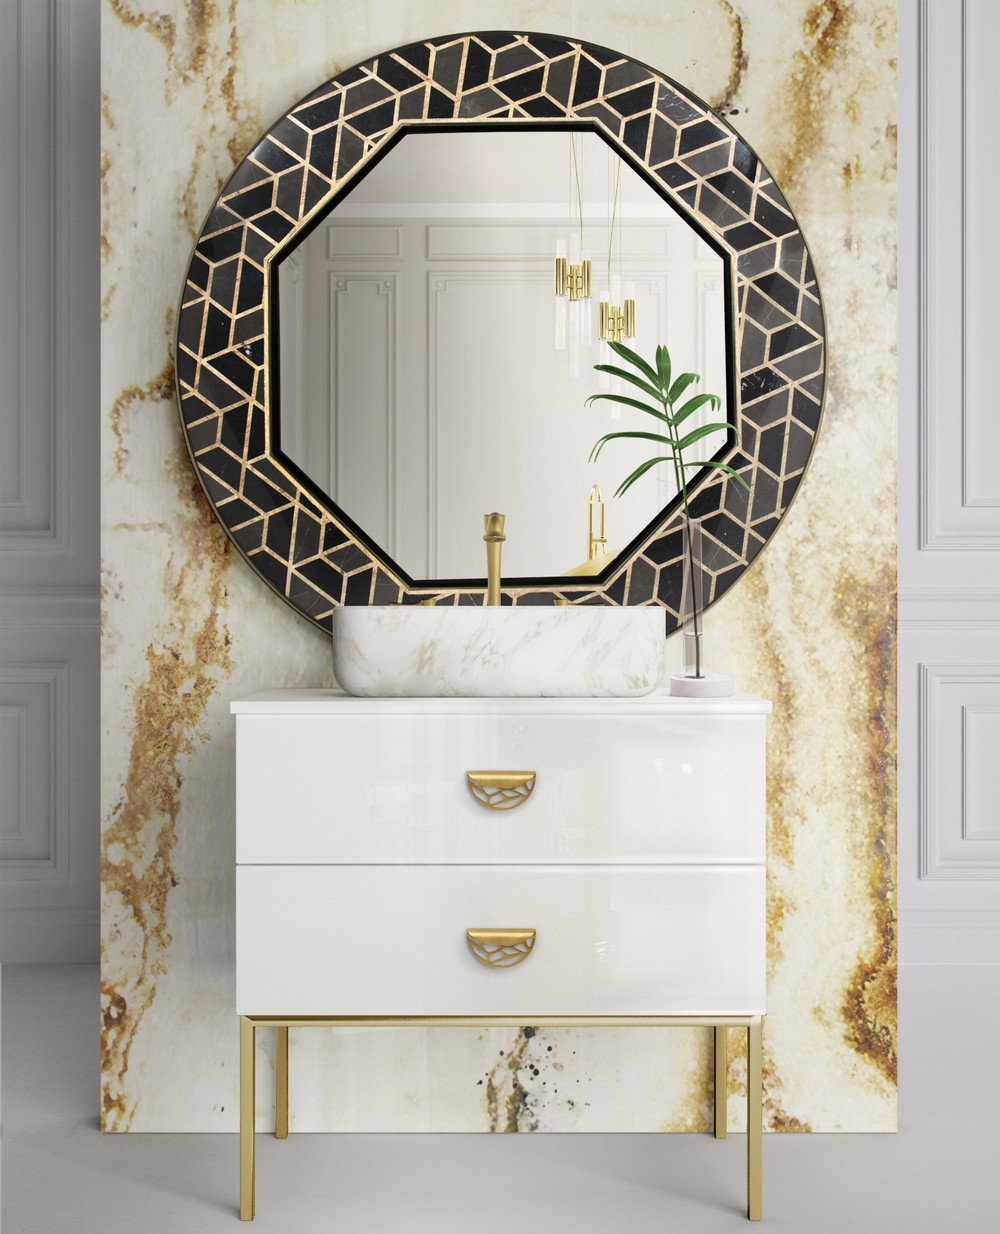 Luxury Bathrooms How to Adorn Your Cabinetry with Decorative Hardware_2 luxury bathrooms Luxury Bathrooms: How to Adorn Your Cabinetry with Decorative Hardware Luxury Bathrooms How to Adorn Your Cabinetry with Decorative Hardware 2